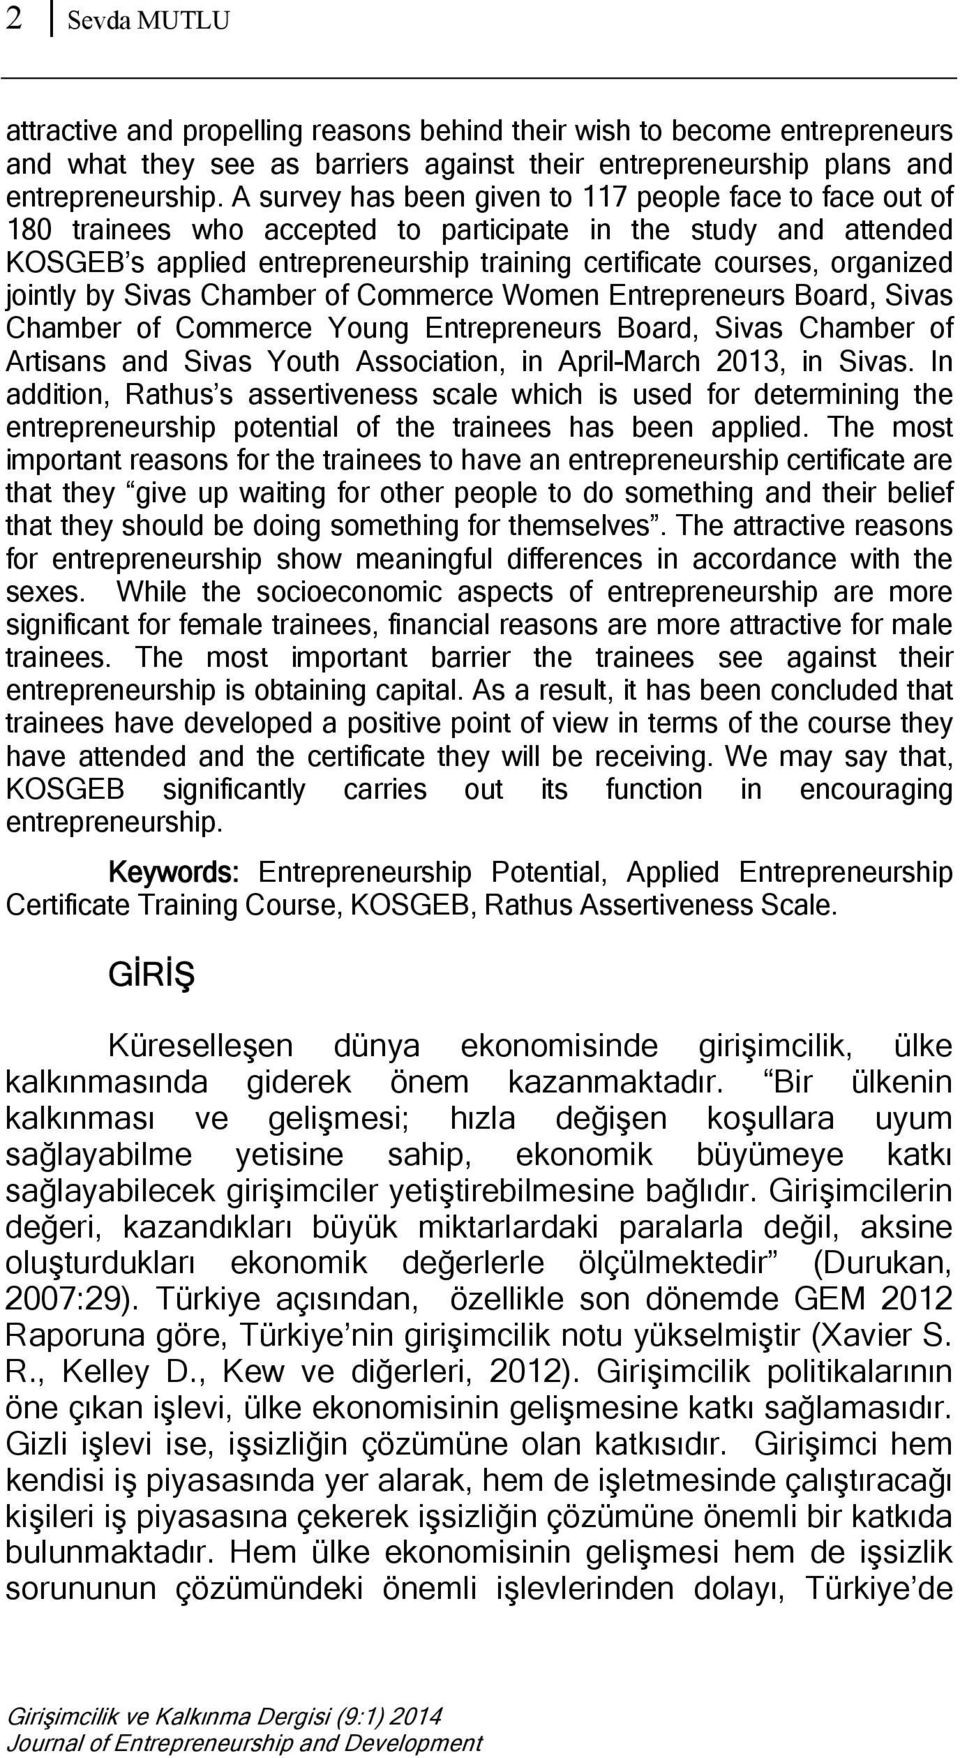 jointly by Sivas Chamber of Commerce Women Entrepreneurs Board, Sivas Chamber of Commerce Young Entrepreneurs Board, Sivas Chamber of Artisans and Sivas Youth Association, in April-March 2013, in